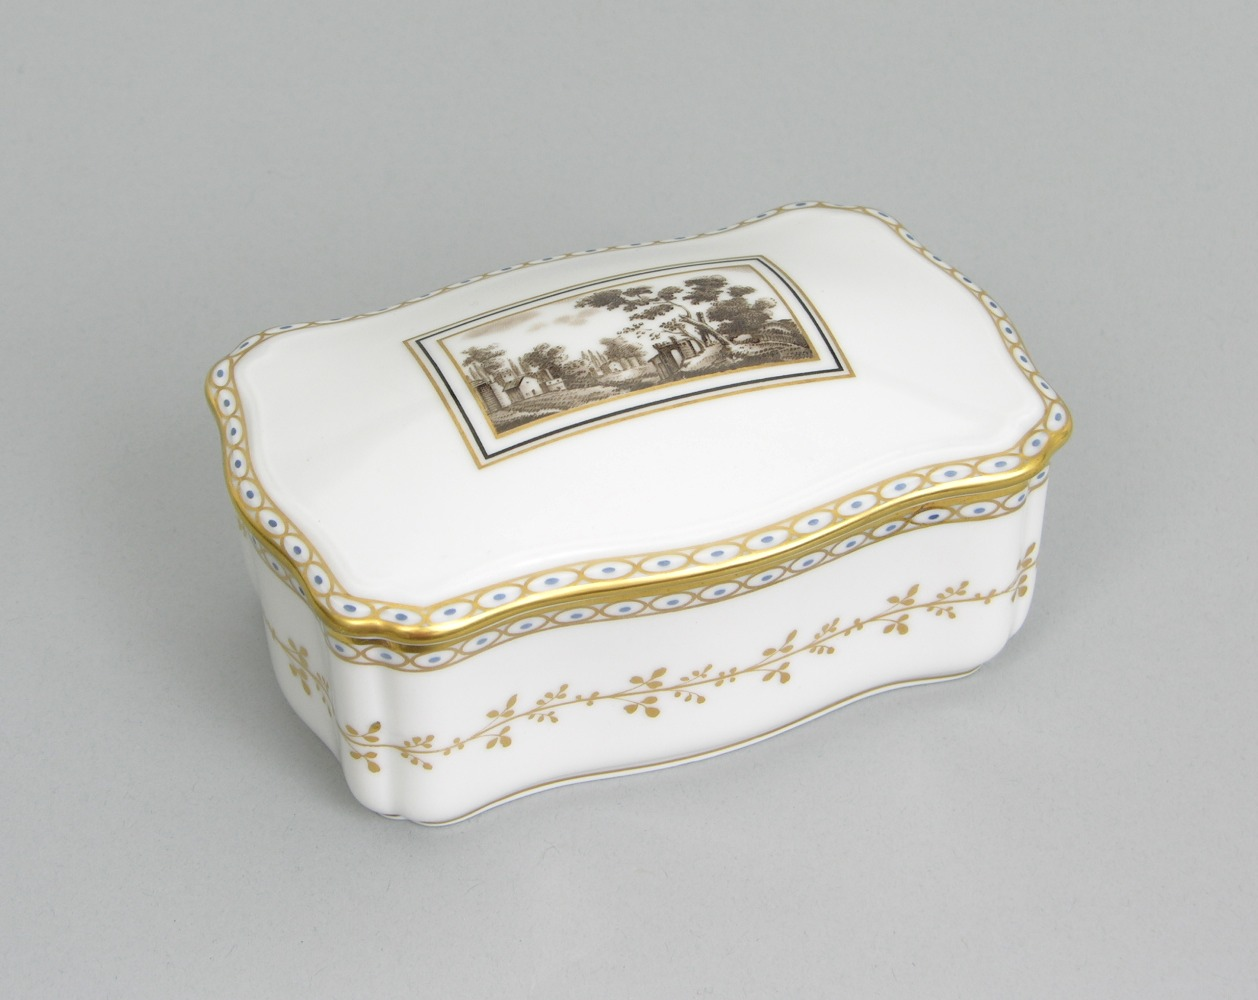 A Porcelain Box by Richard Ginori, 05.14.09, Sold: $143.75